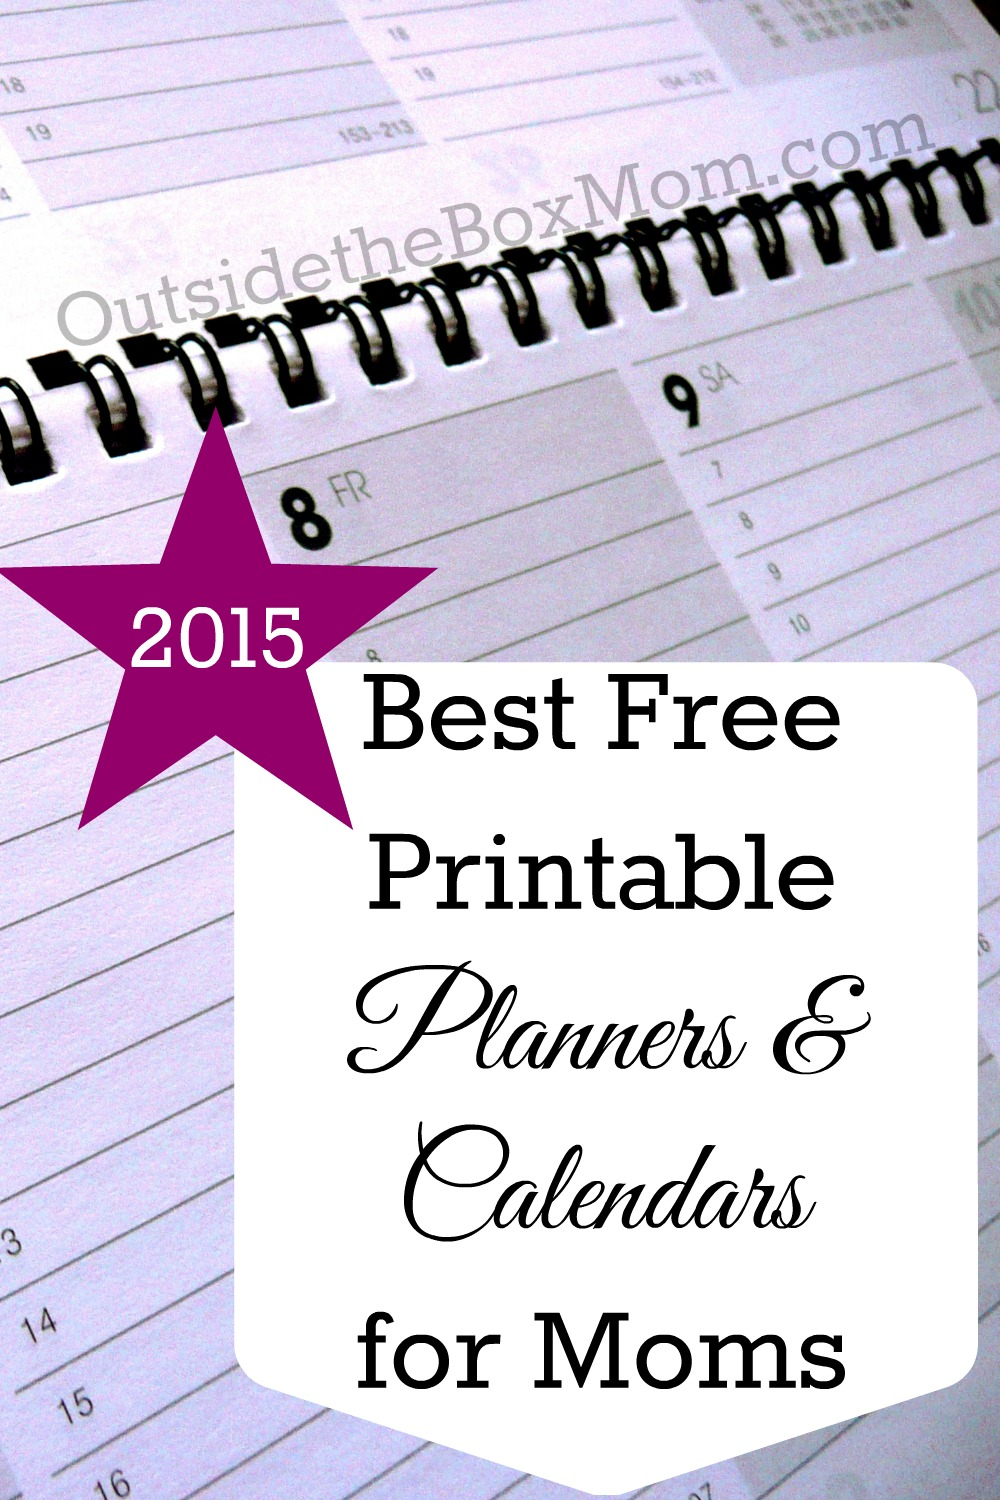 8 Images of Printable Planners For Moms